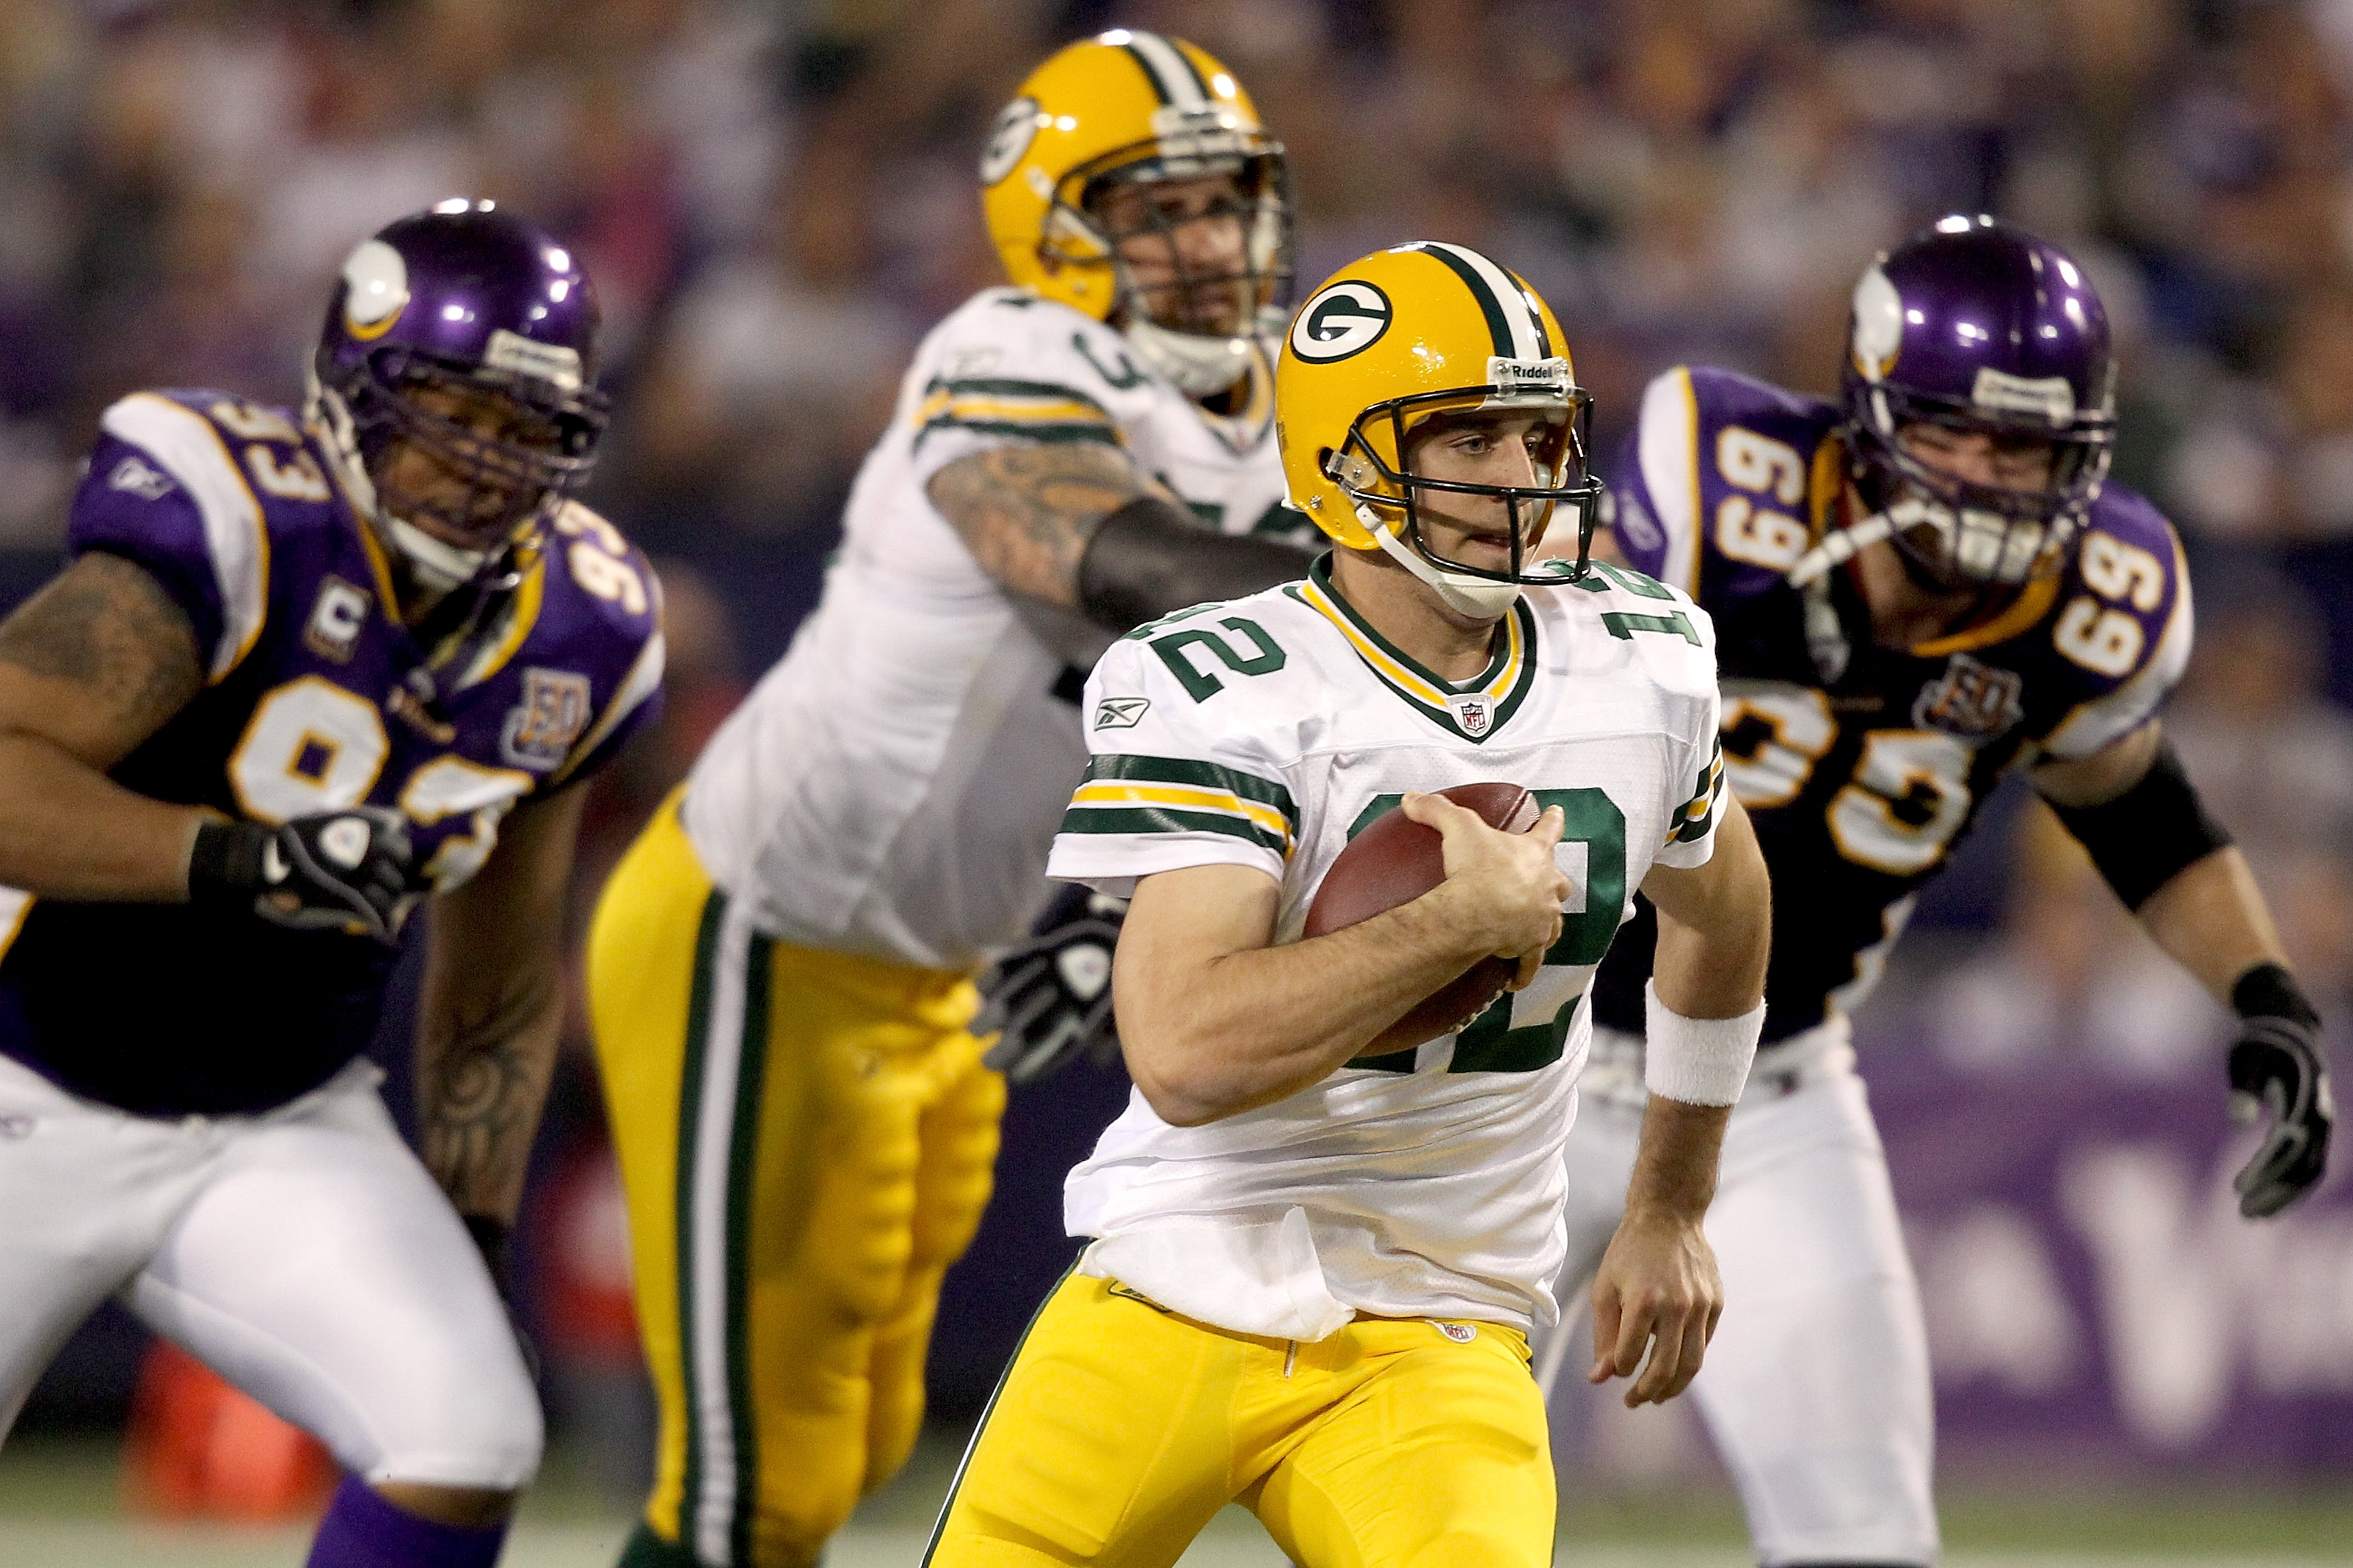 MINNEAPOLIS - NOVEMBER 21:  Quarterback Aaron Rodgers #12 of the Green Bay Packers is chased from the pocket by the Minnesota Vikings  at the Hubert H. Humphrey Metrodome on November 21, 2010 in Minneapolis, Minnesota.  (Photo by Matthew Stockman/Getty Im